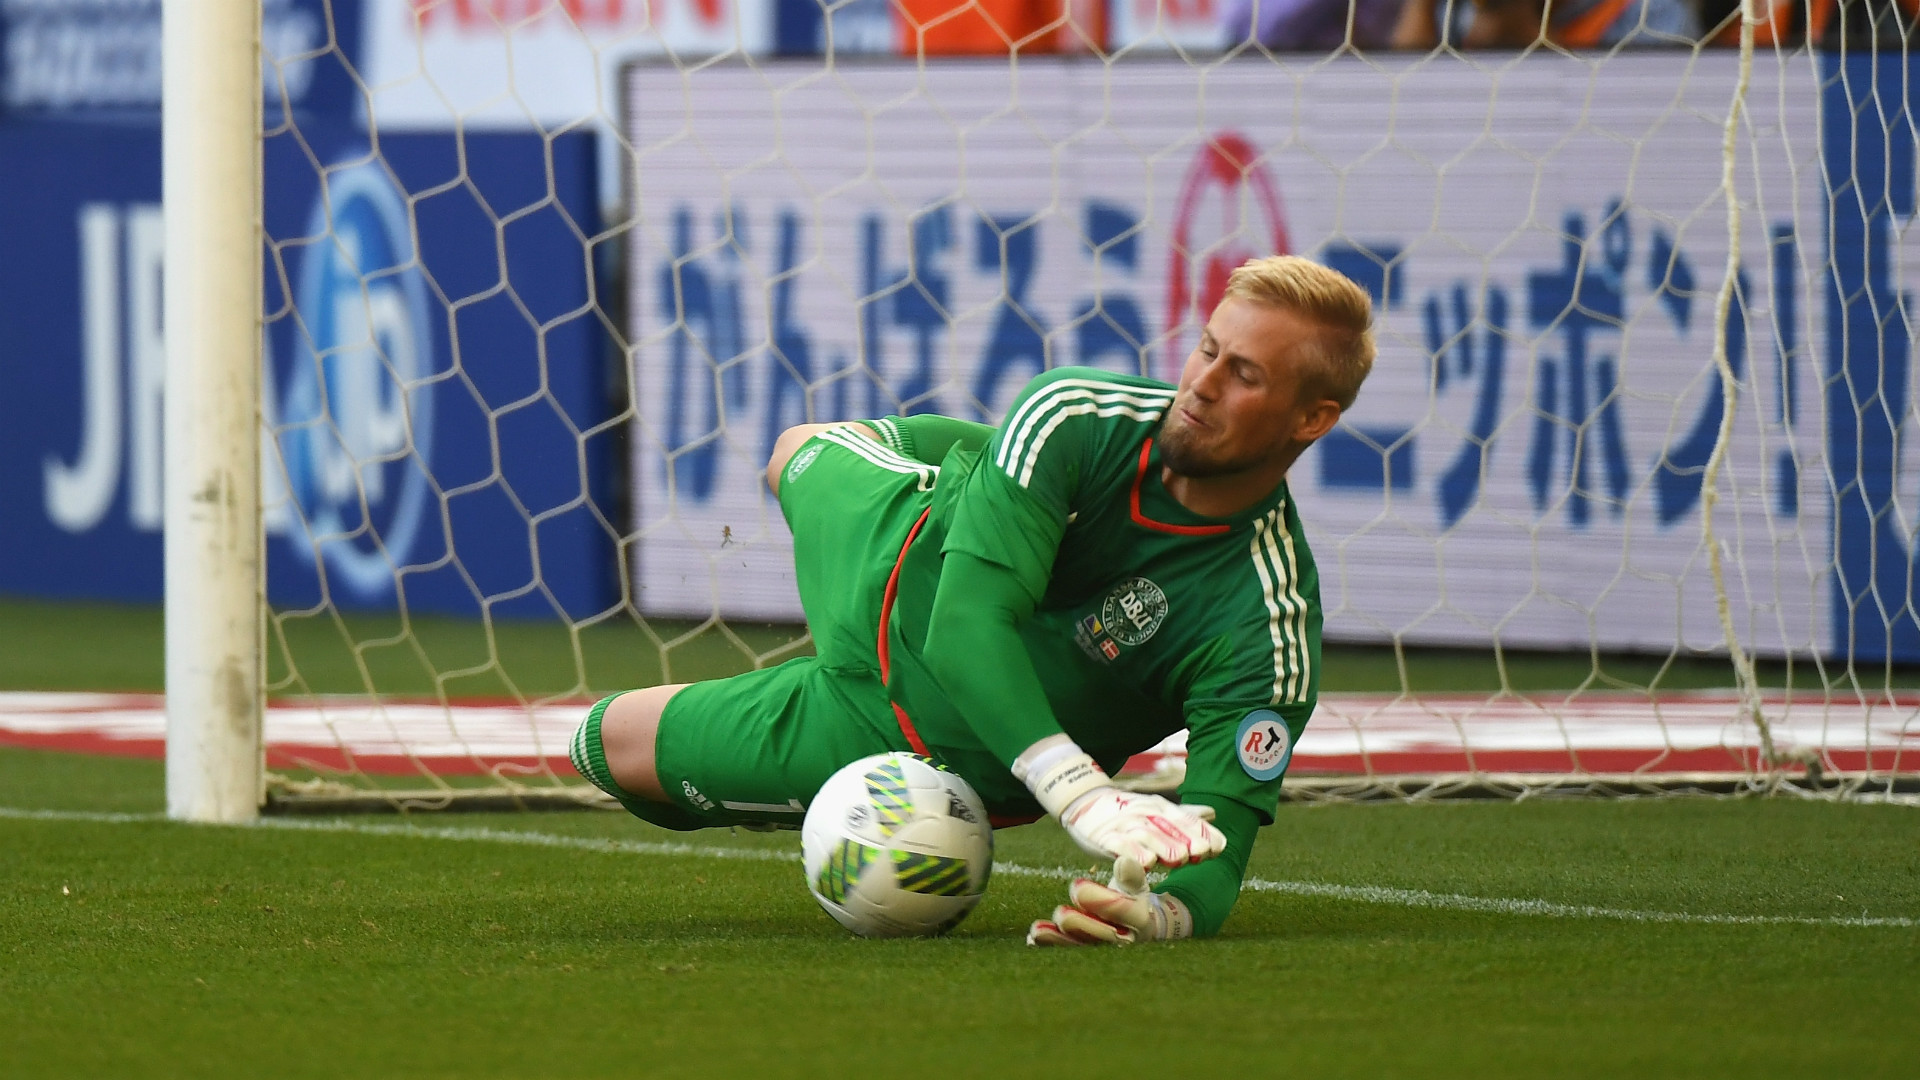 Top 10 Famous Goalkeepers For Fifa World Cup 2018: World Cup 2018 Fantasy Football: Who Are Best Goalkeepers